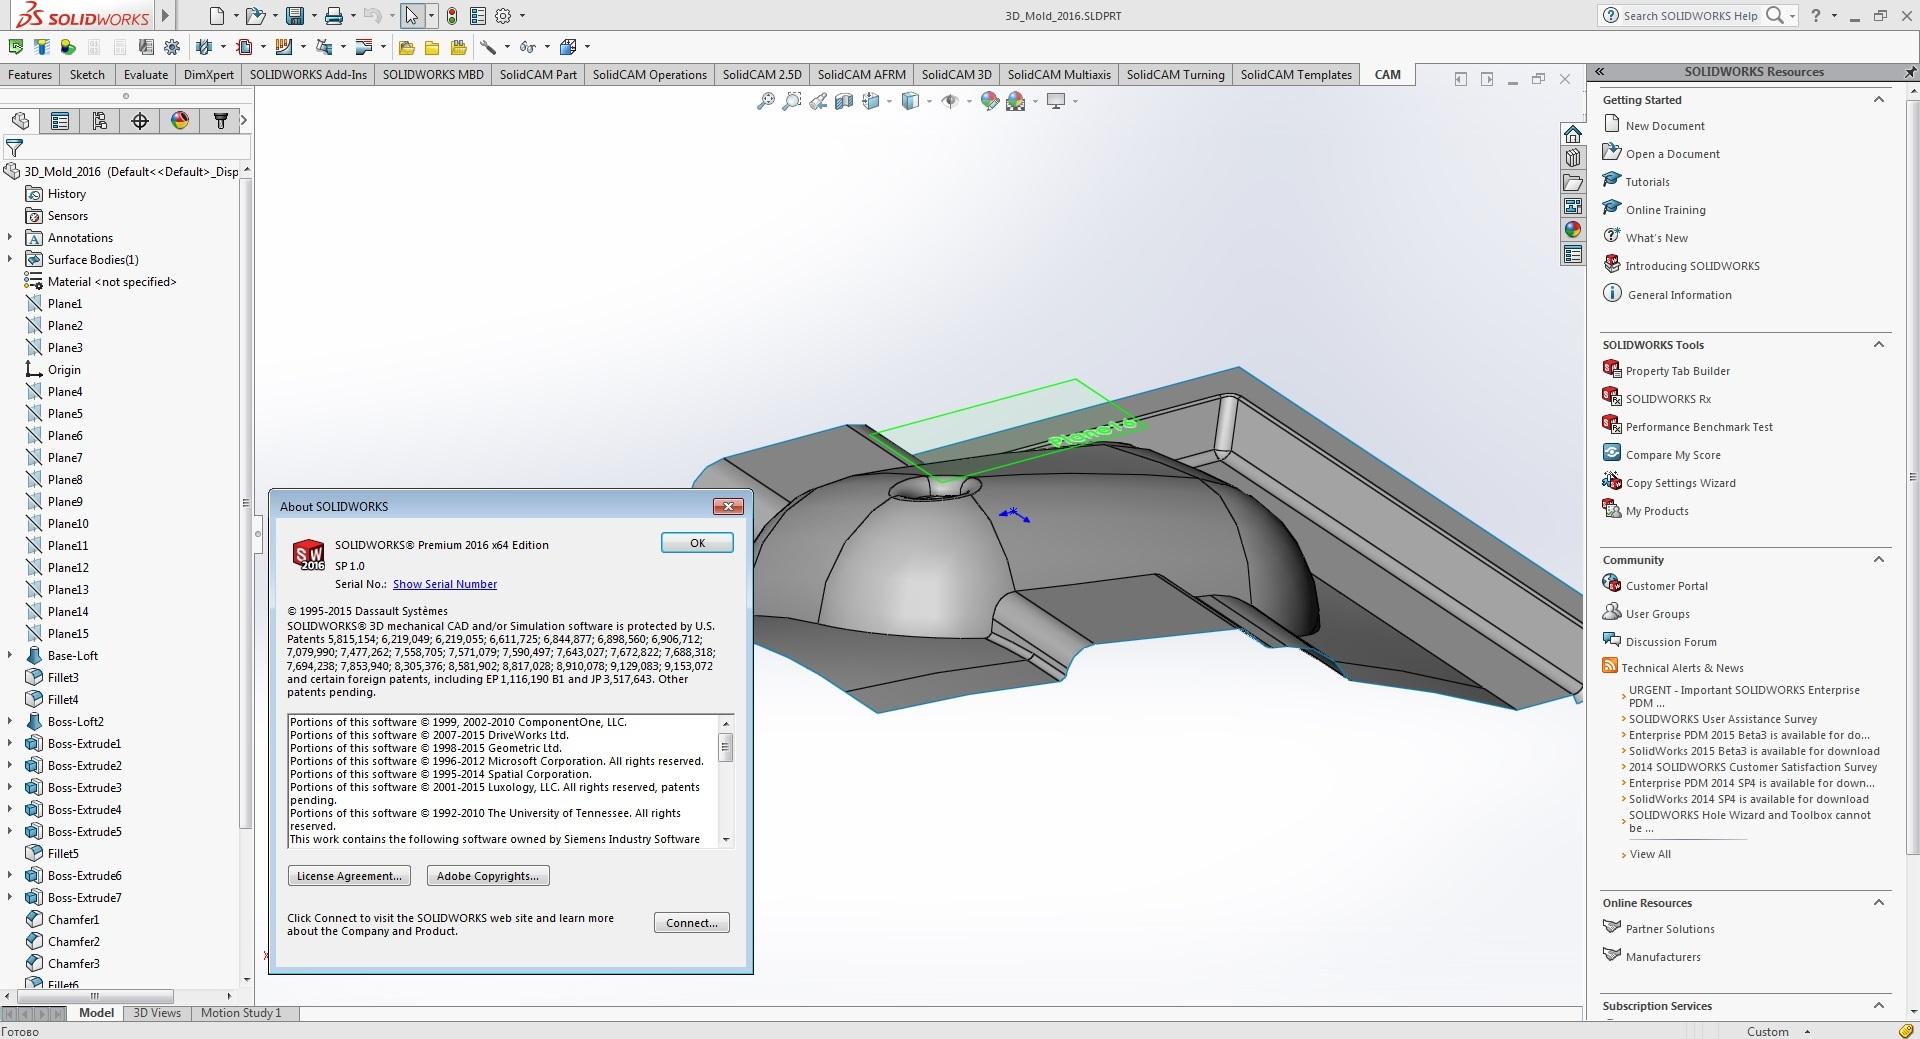 SolidWorks 2016 SP1.0